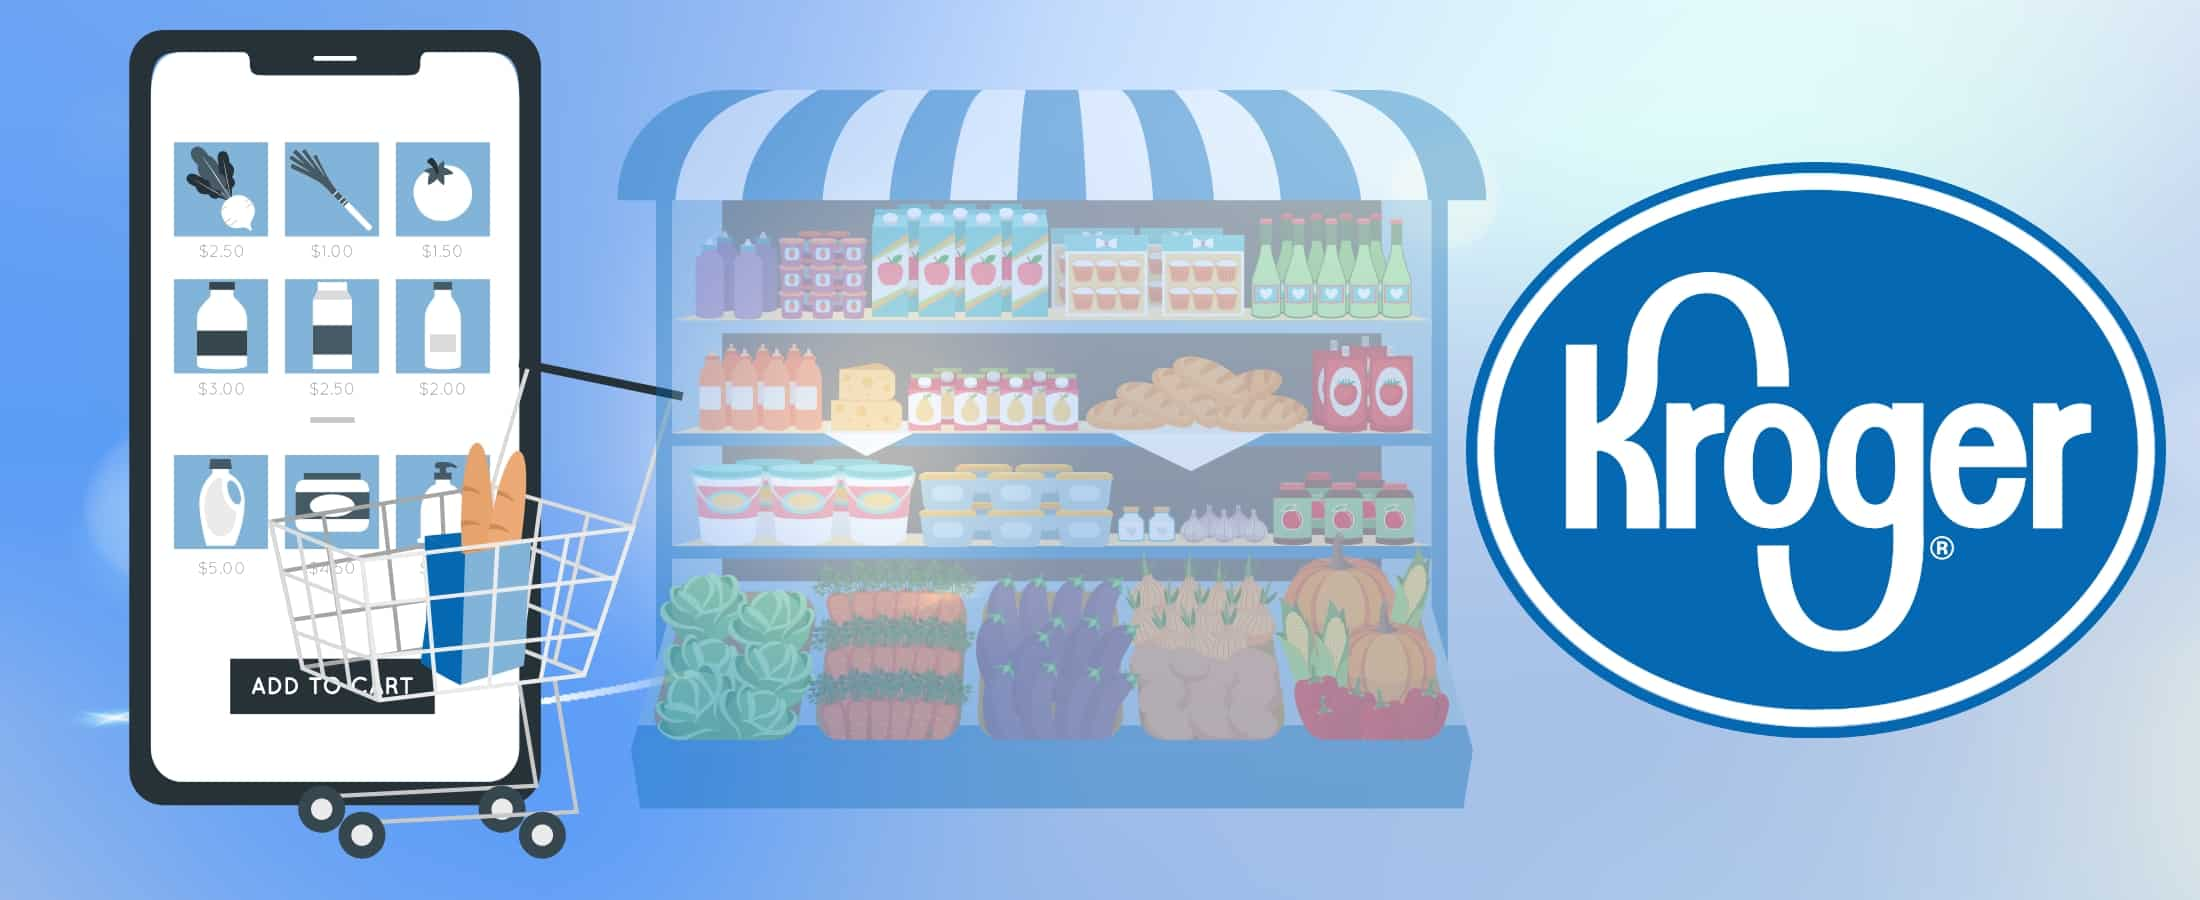 Kroger for grocery delivery app development - Moon Technolabs